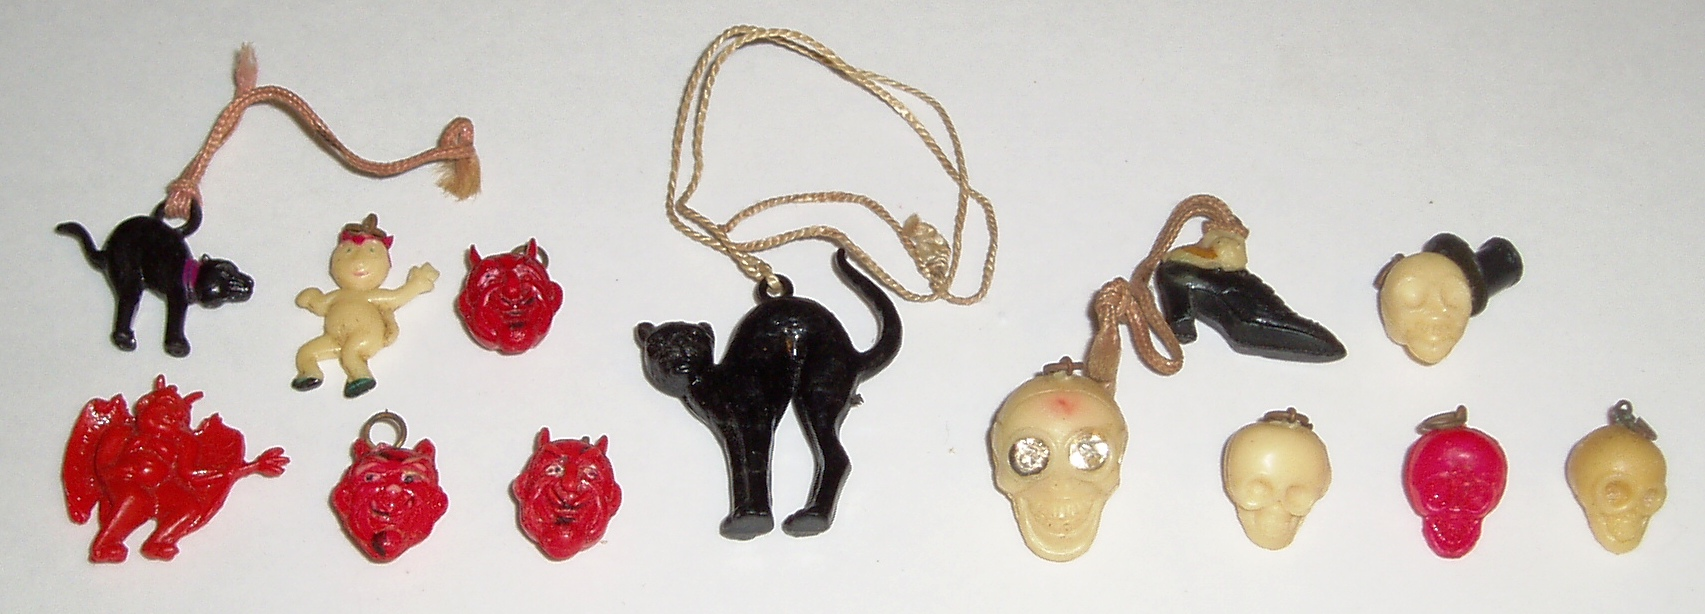 tiny treats kitchen collectibles for halloween more kings celluloid gumball charms charms